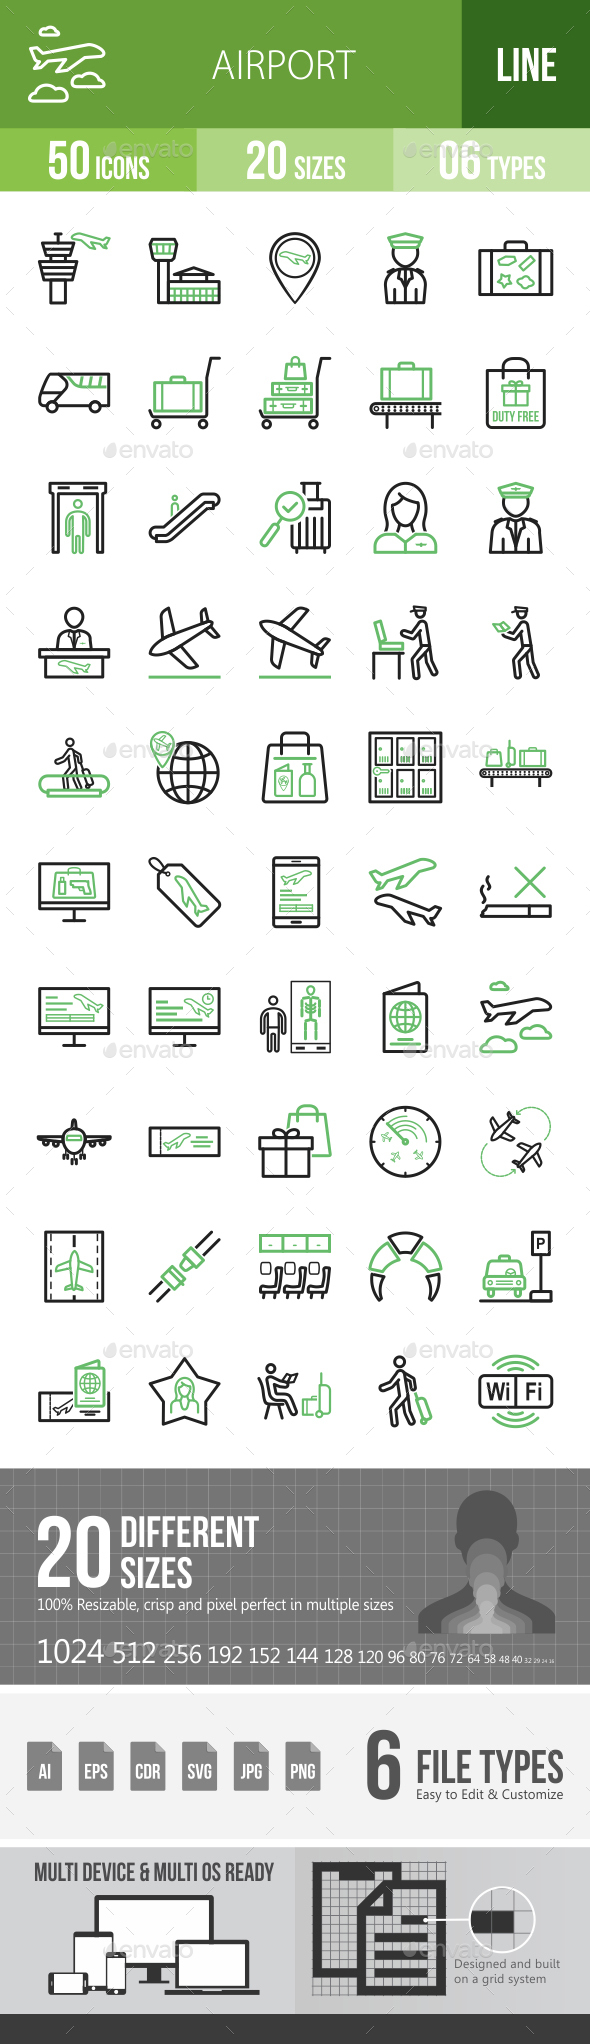 Airport Line Green & Black Icons - Icons